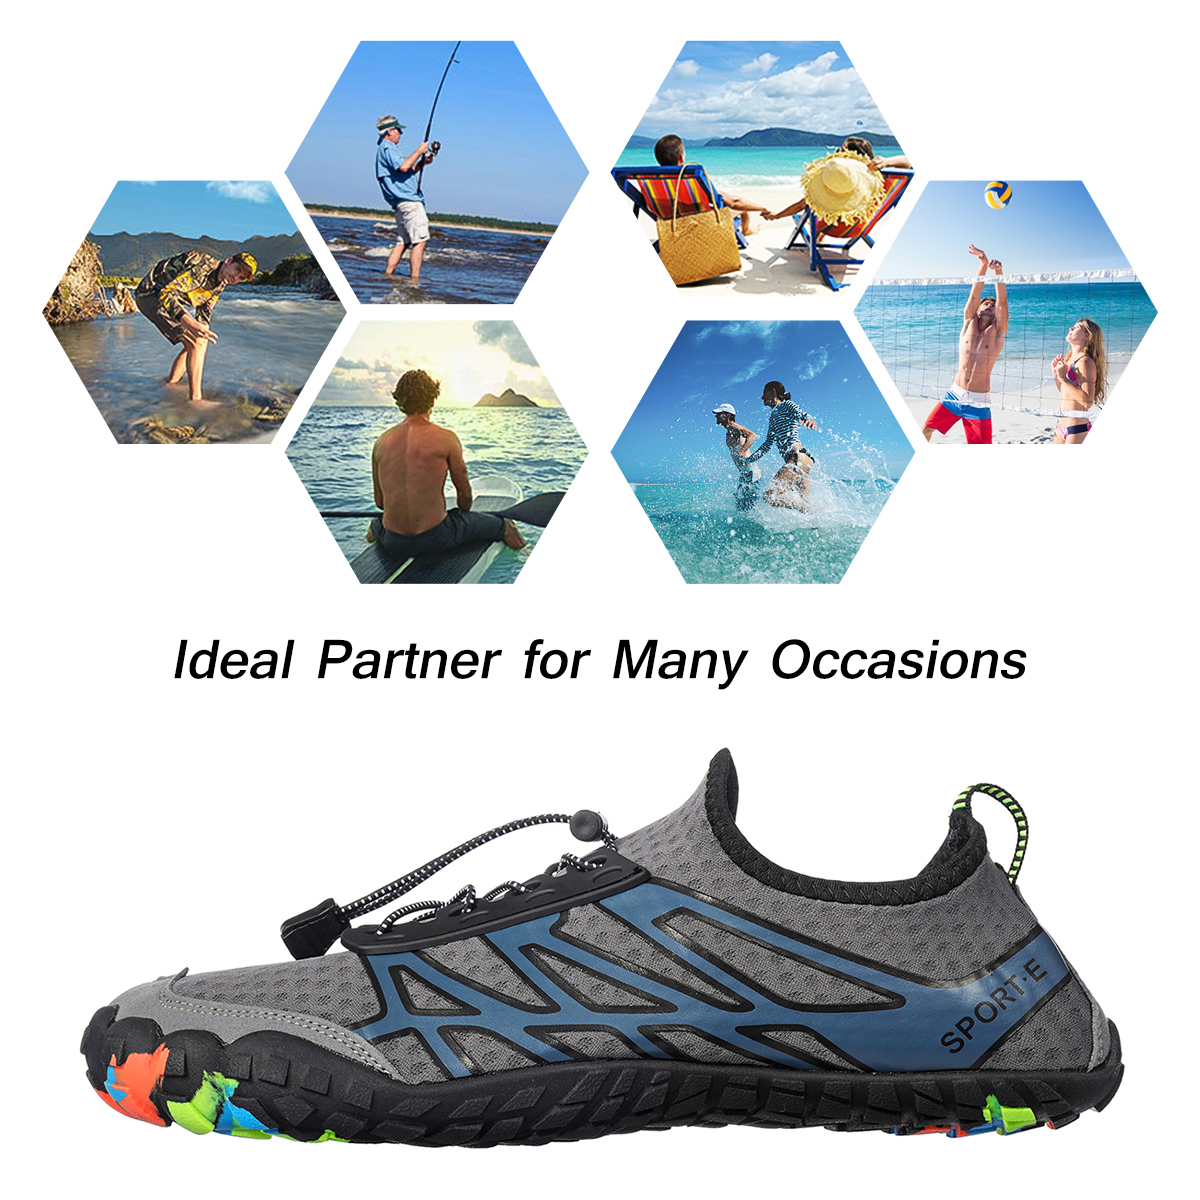 Unisex Water Shoes Quick-Qrying Water Sports Surfing Yoga Fitness Running Walking Beach Sneakers